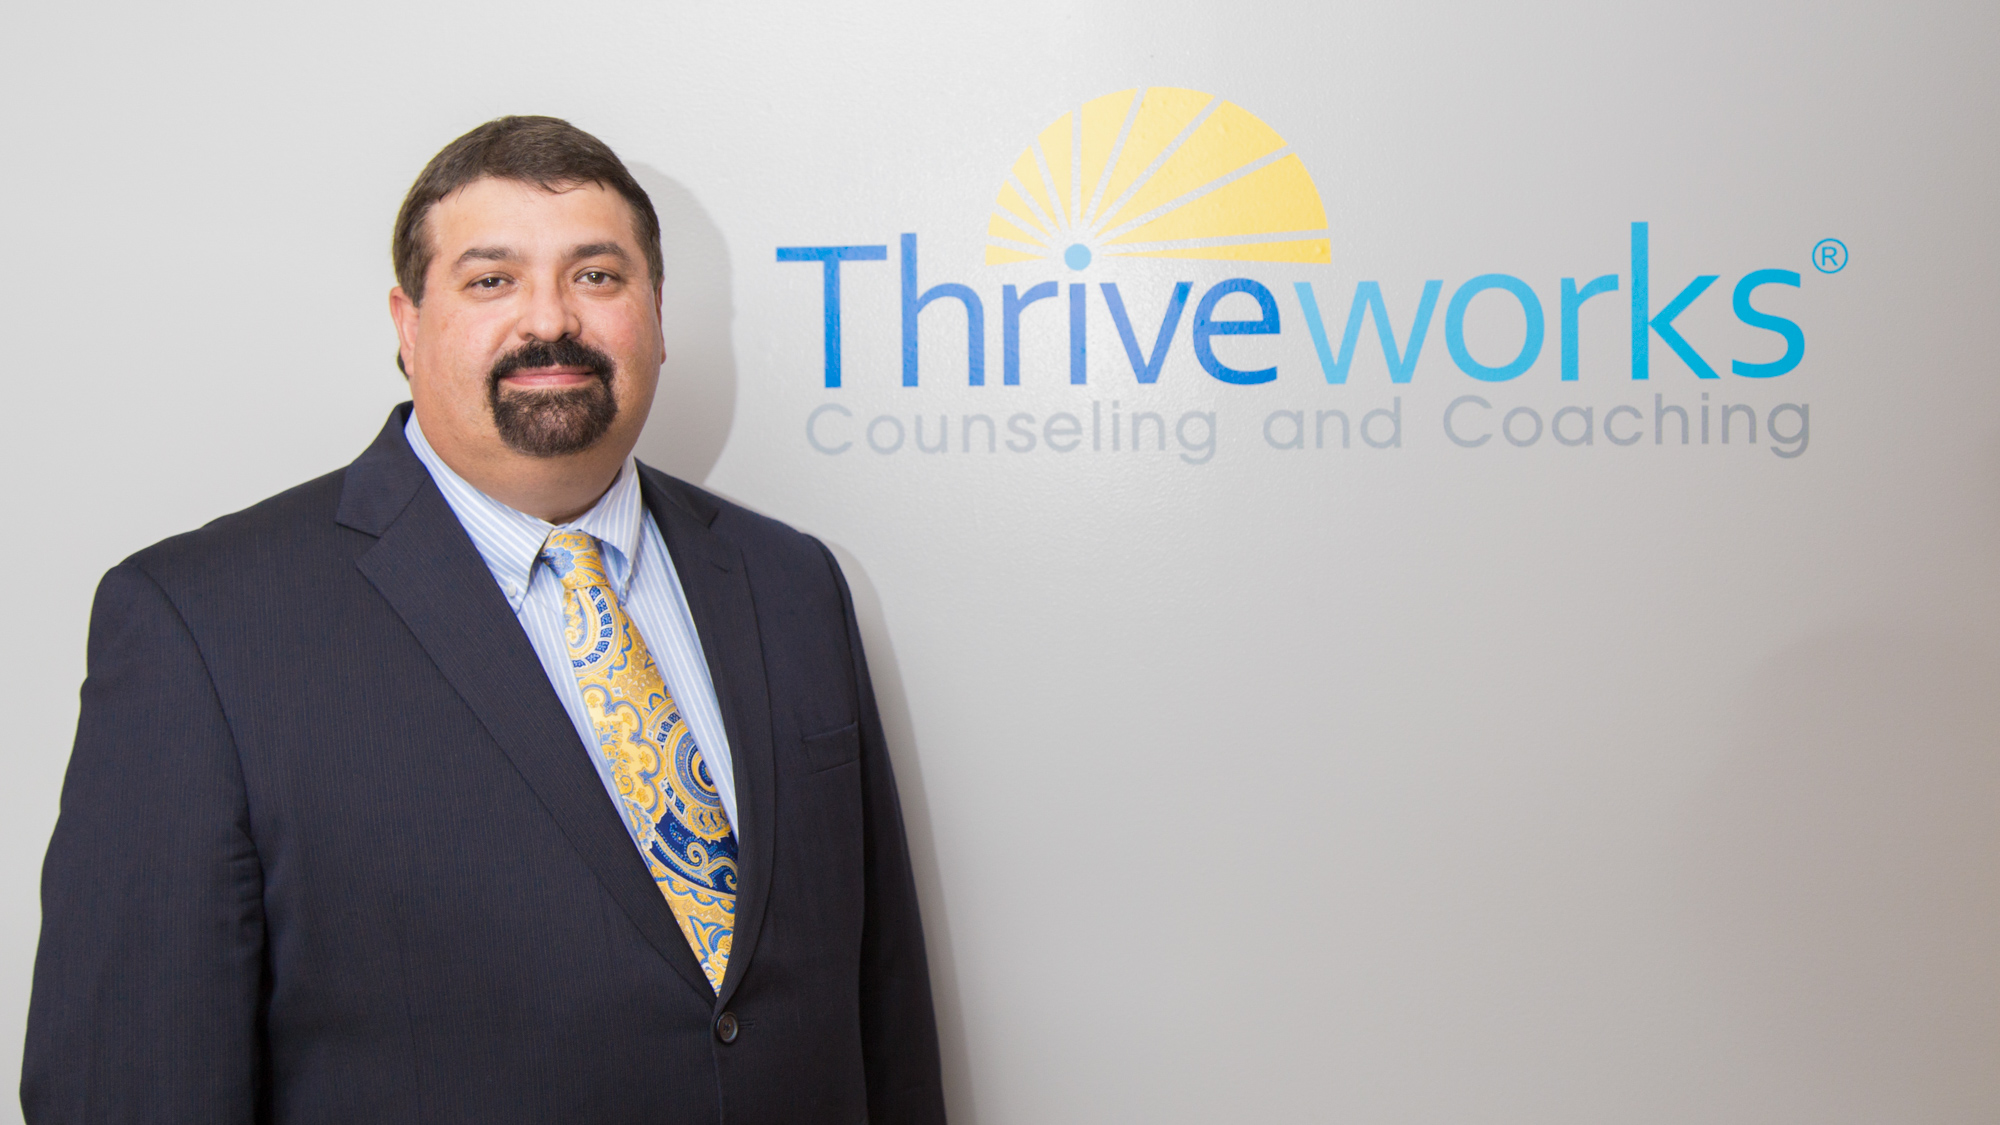 Gregory White bristol thriveworks counselor